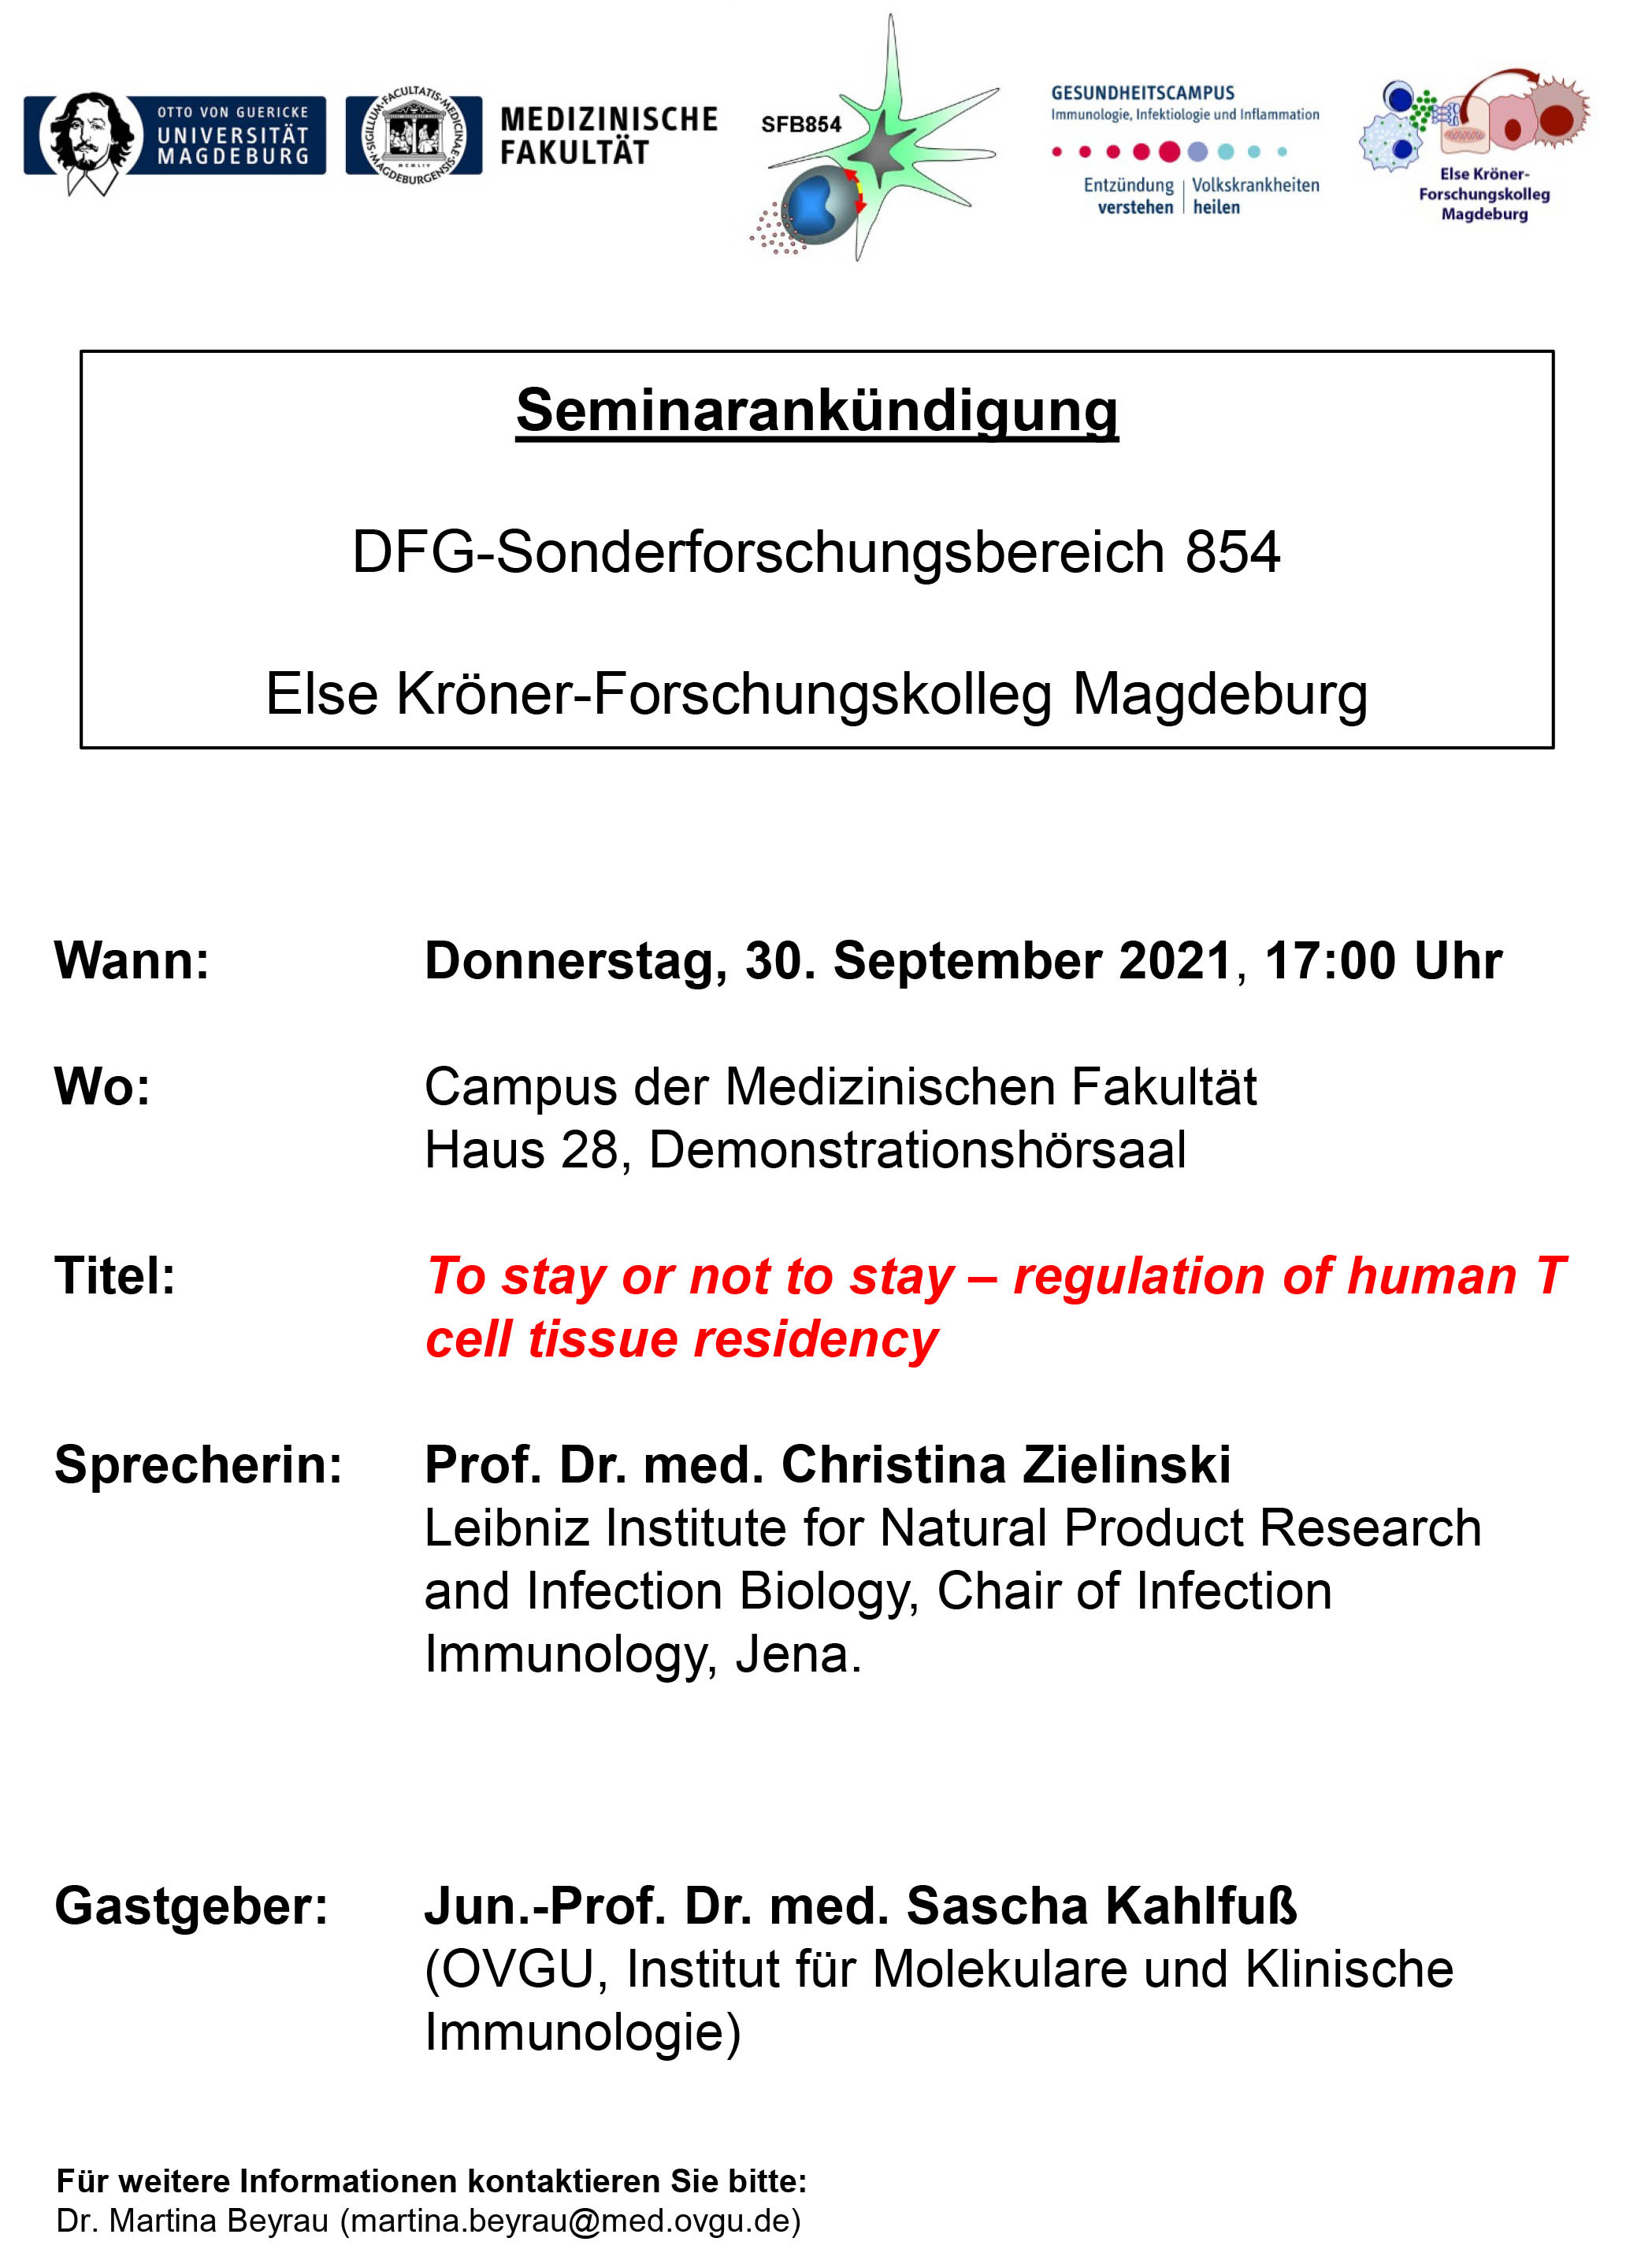 CRC 854 Seminar: To stay or not to stay – regulation of human T cell tissue residency @ Zoom